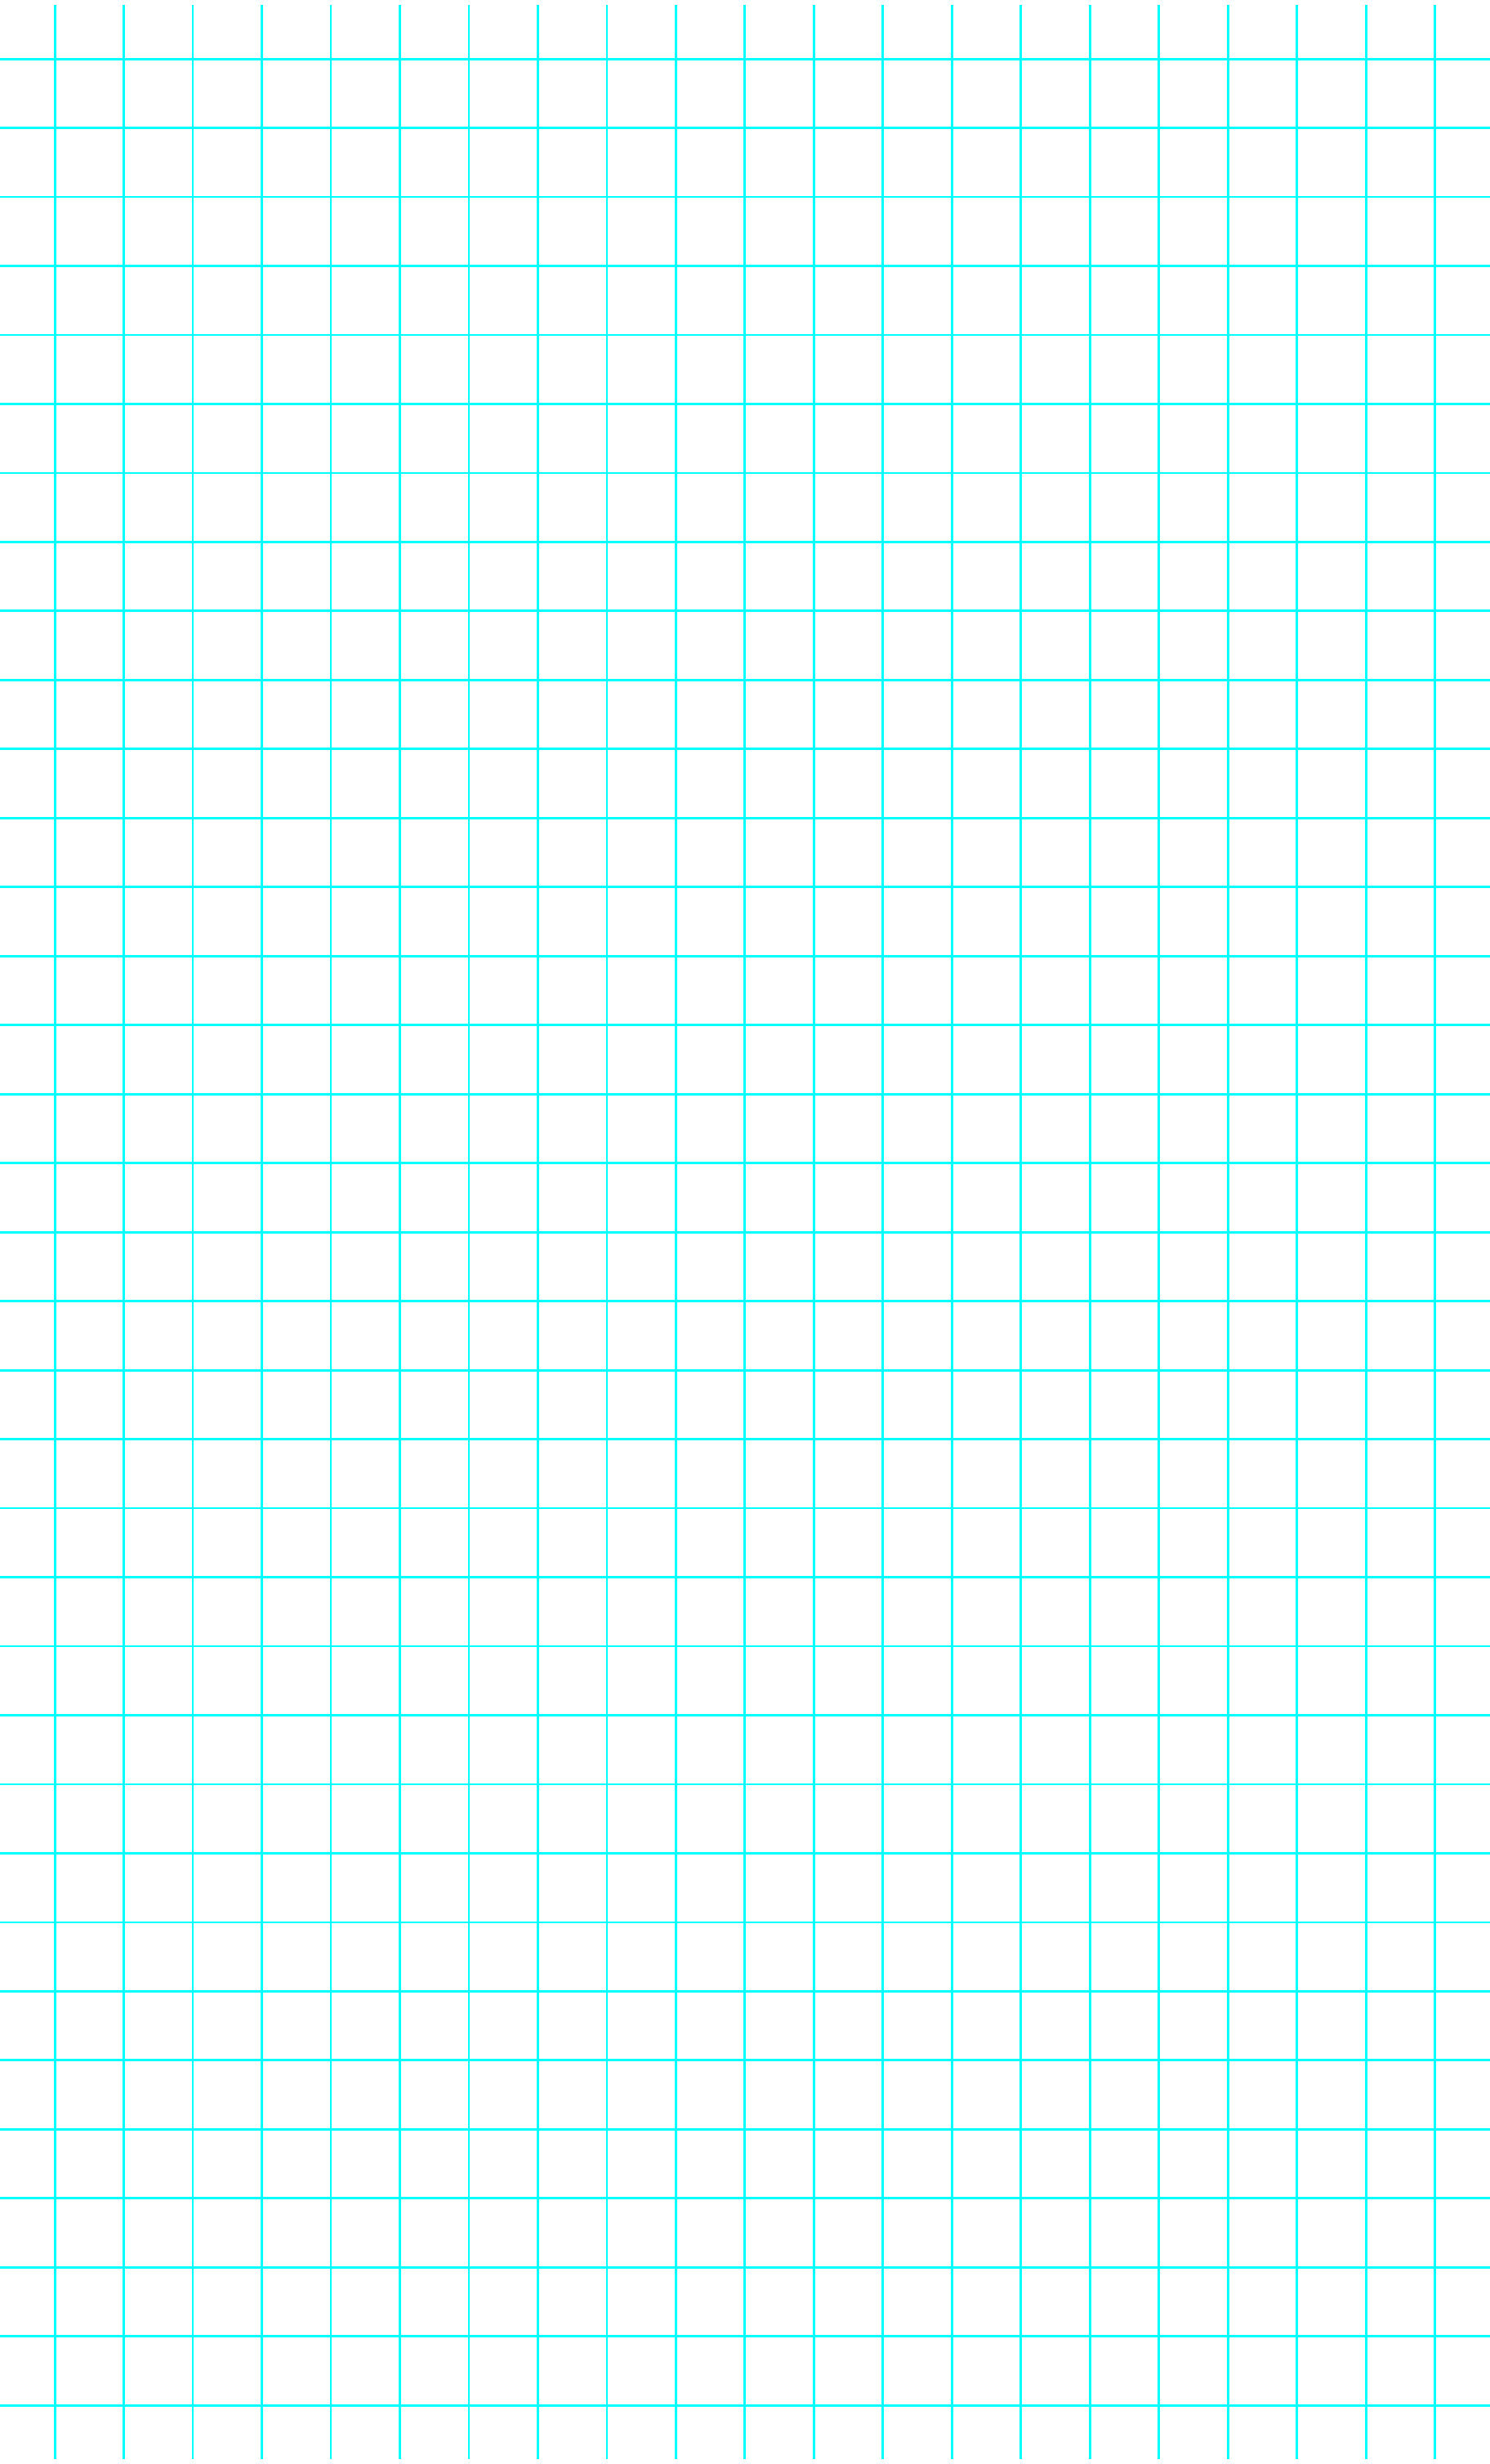 1 line per cm graph paper on legal